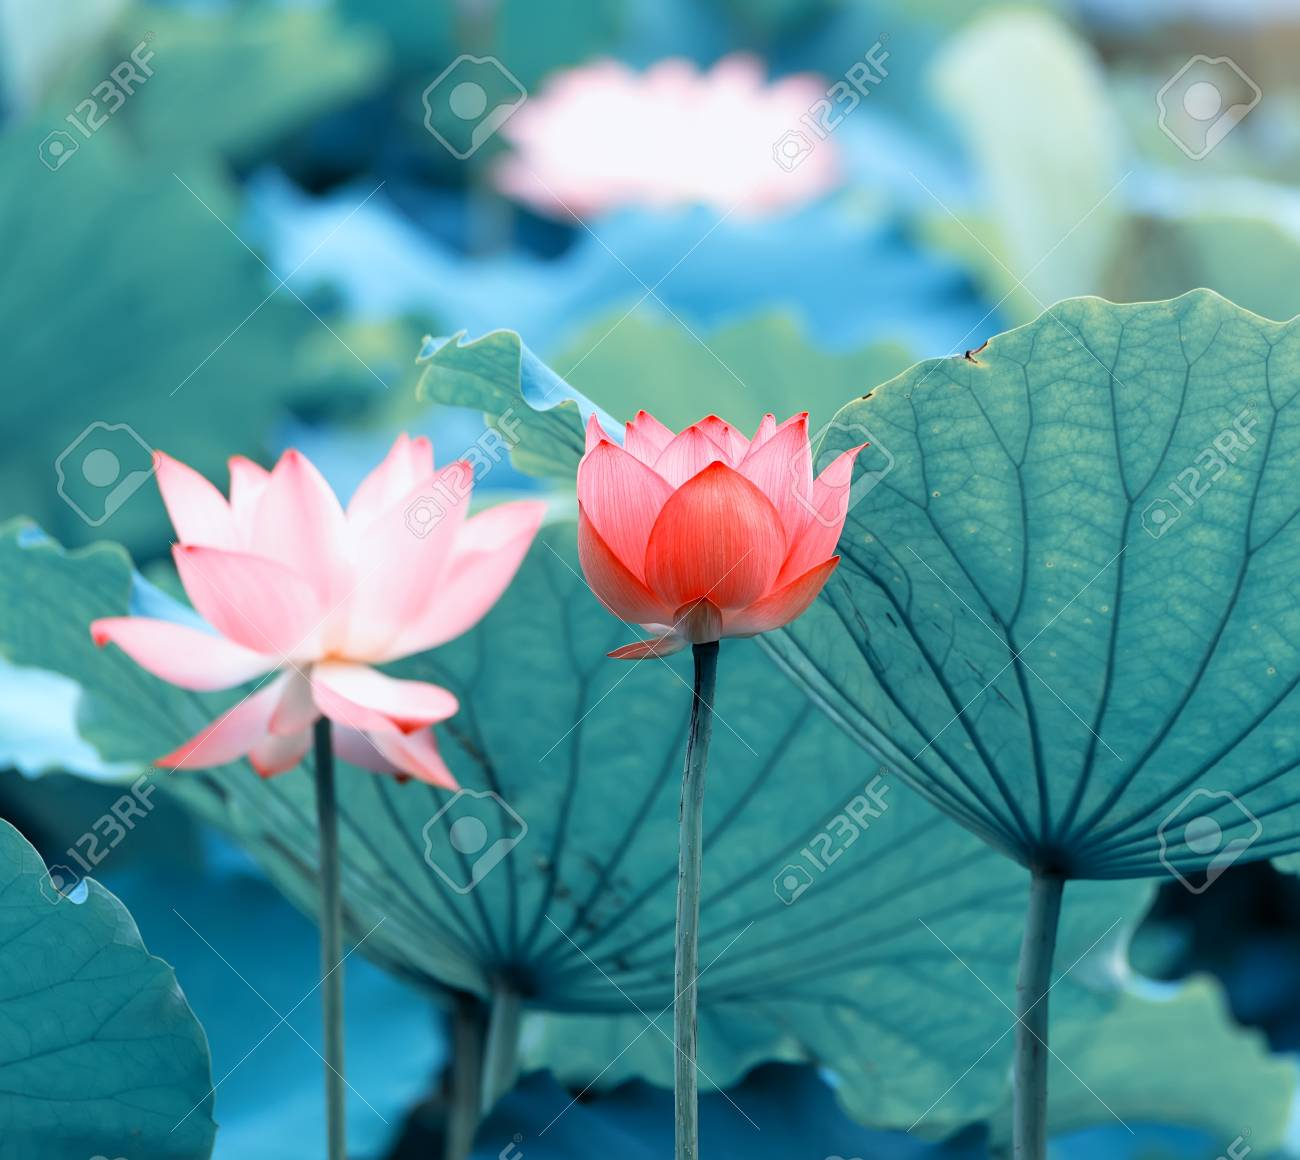 Blooming lotus flower stock photo picture and royalty free image blooming lotus flower stock photo 85641822 izmirmasajfo